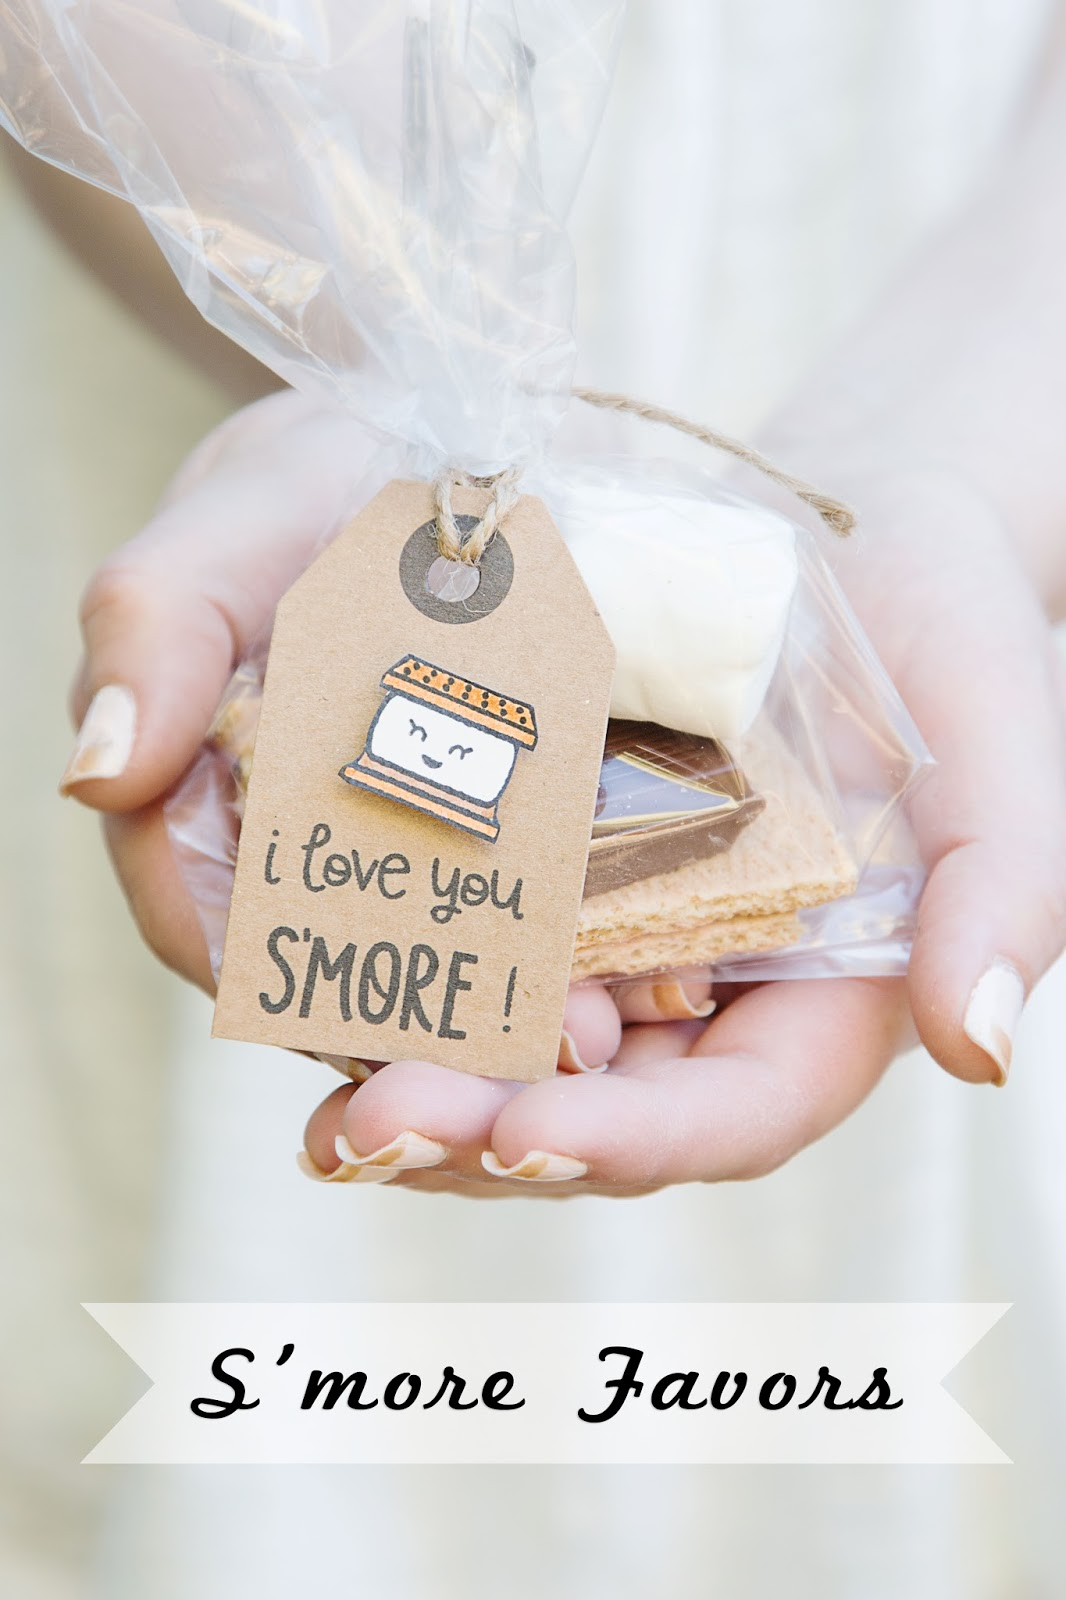 Lawn Fawn Smore Favors @craftsavvy @createoften #diy #party #favors #smores #glamping